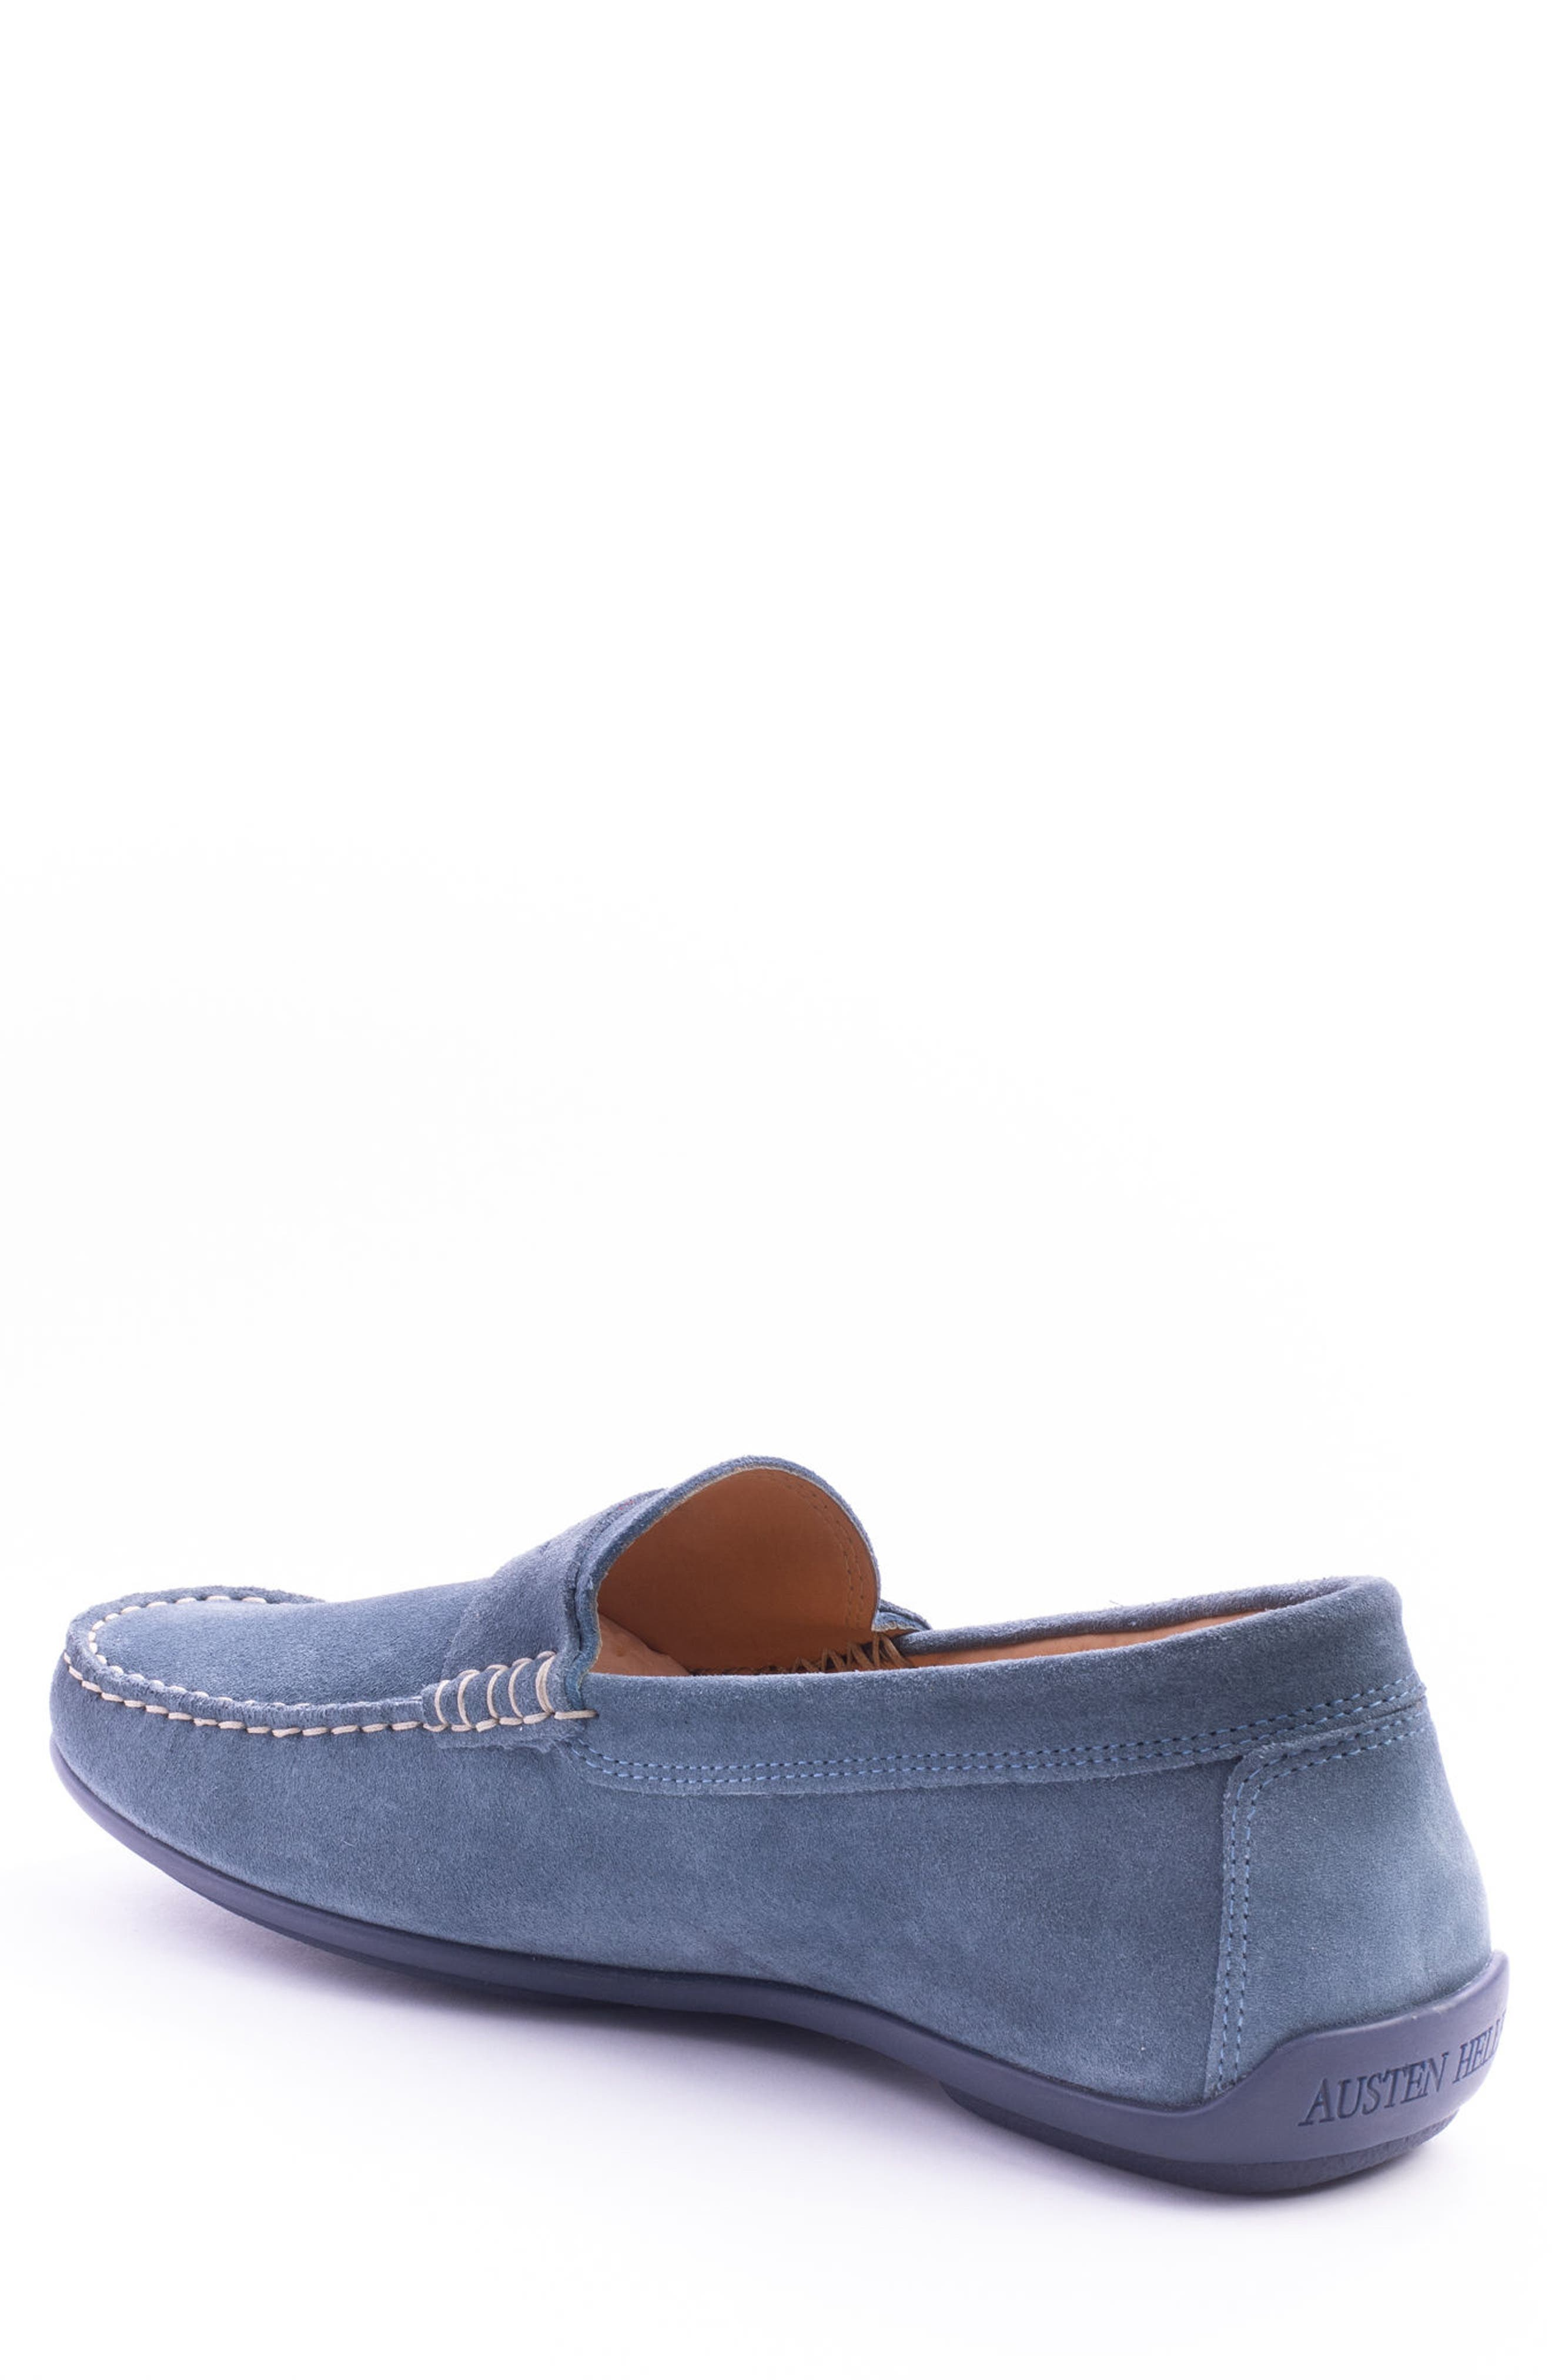 'Parkers' Penny Loafer,                             Alternate thumbnail 2, color,                             Indigo